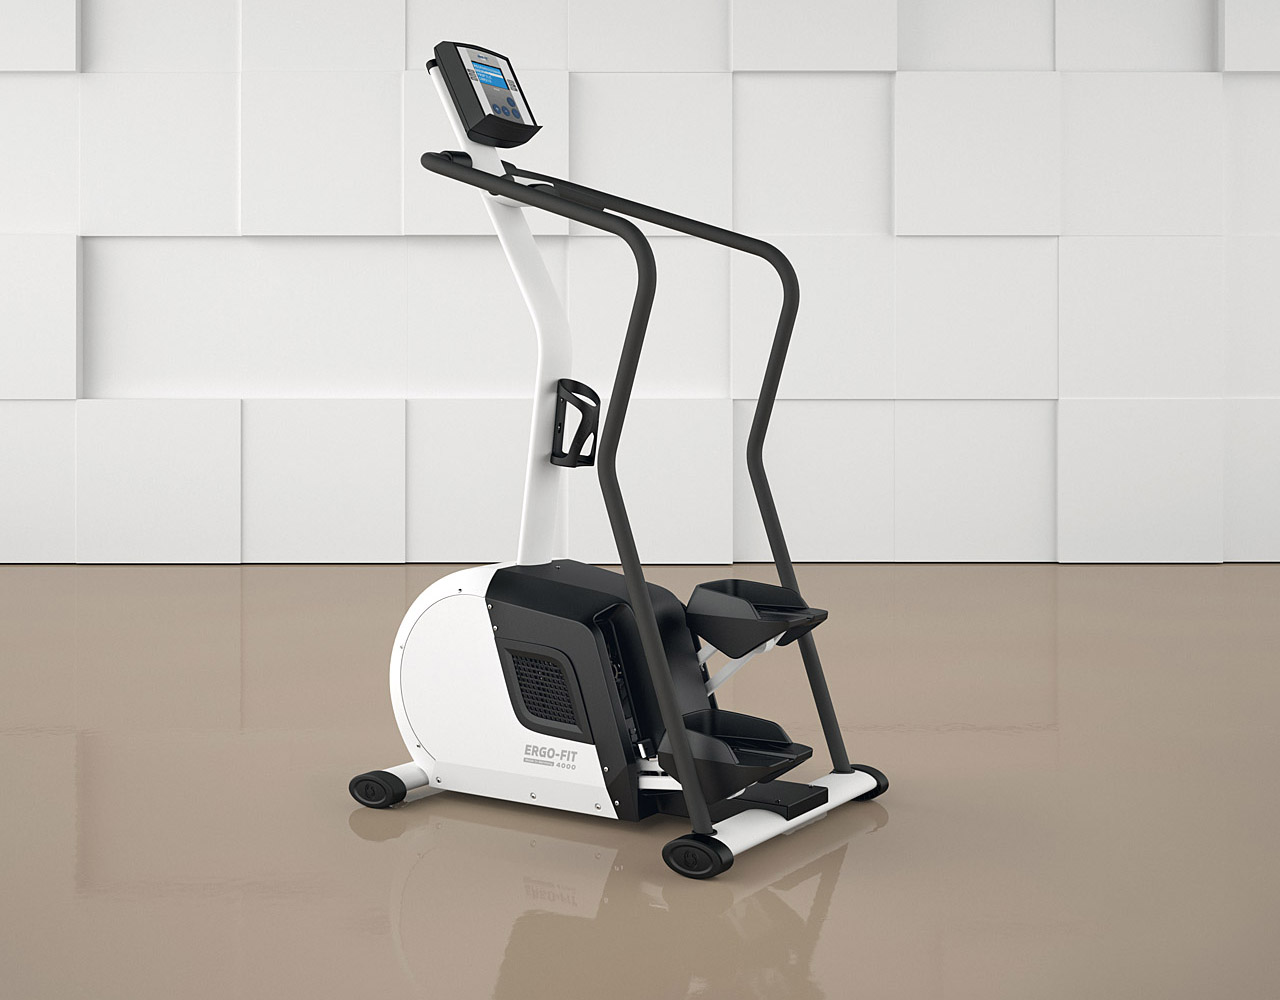 ERGO-FIT Stepper